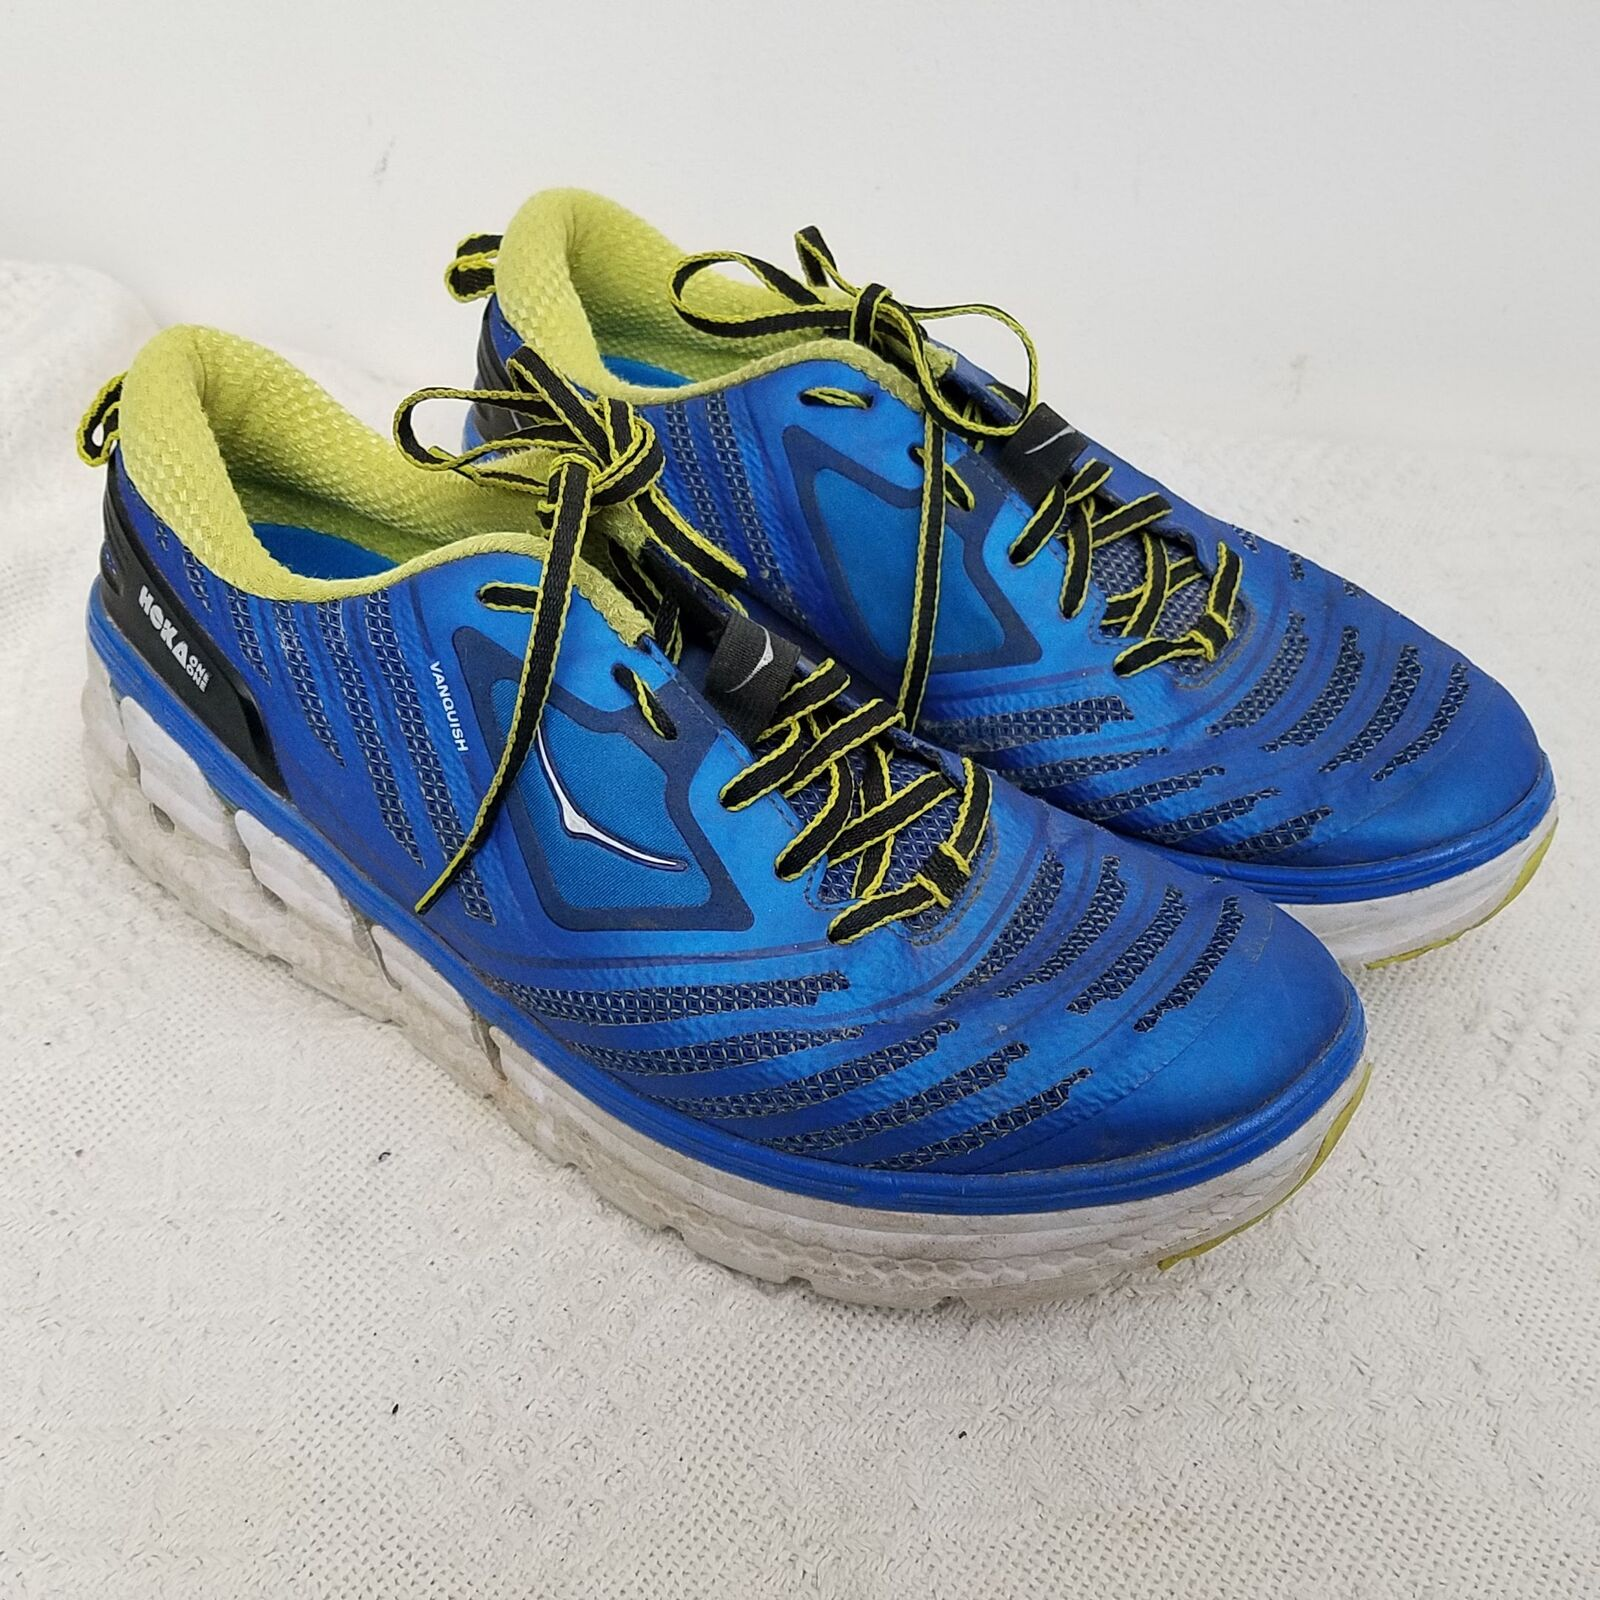 Hoka One One Mens Vanquish 12 bluee Green Lace Up Athletic Running